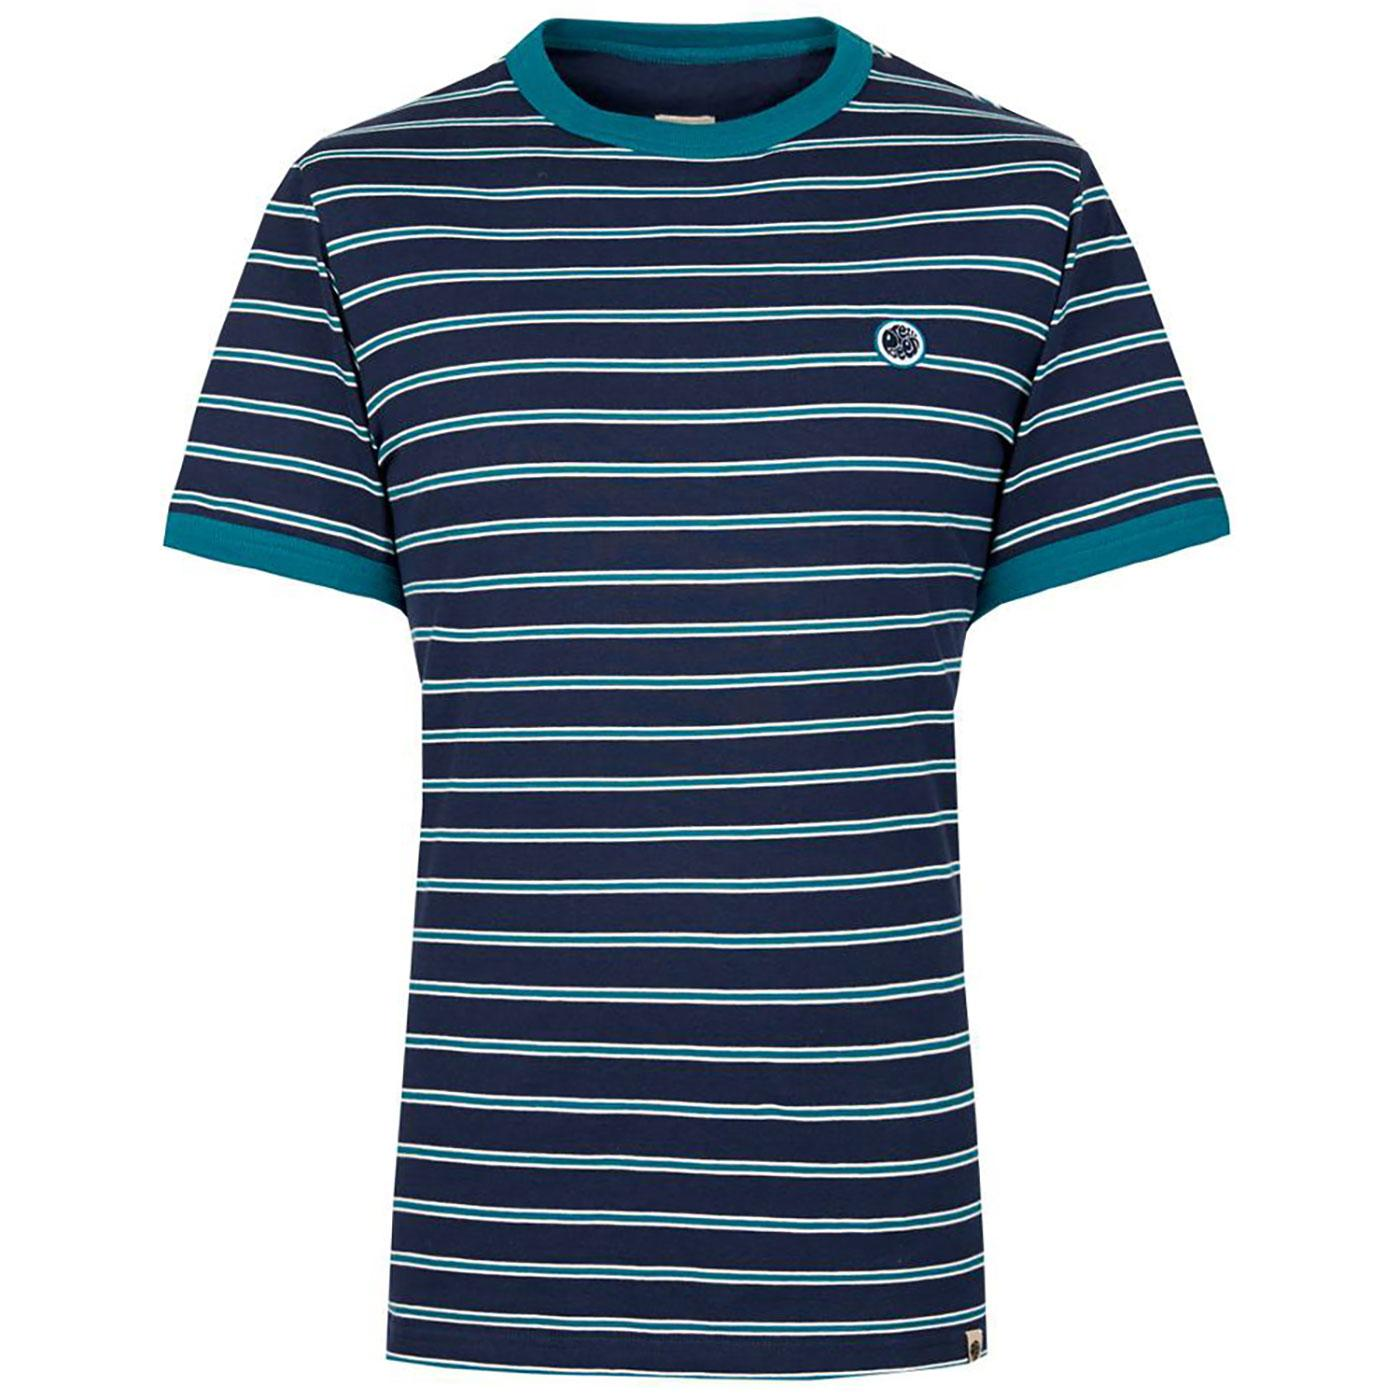 PRETTY GREEN Retro Contrast Stripe Ringer Tee NAVY